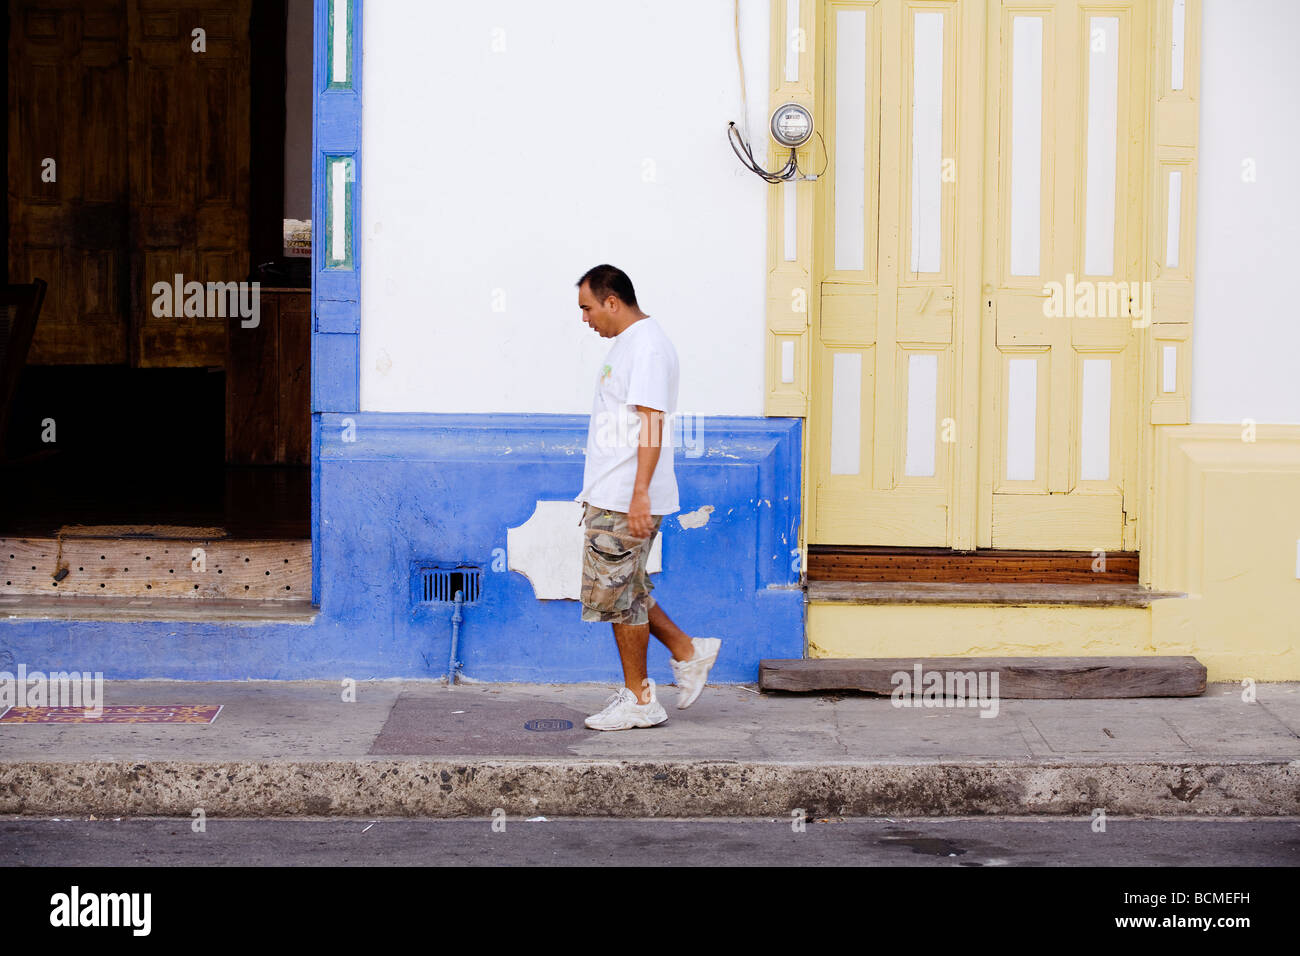 A man walks in front of a colonial building in the Calle real district of Liberia in Guanacaste, Costa Rica. - Stock Image